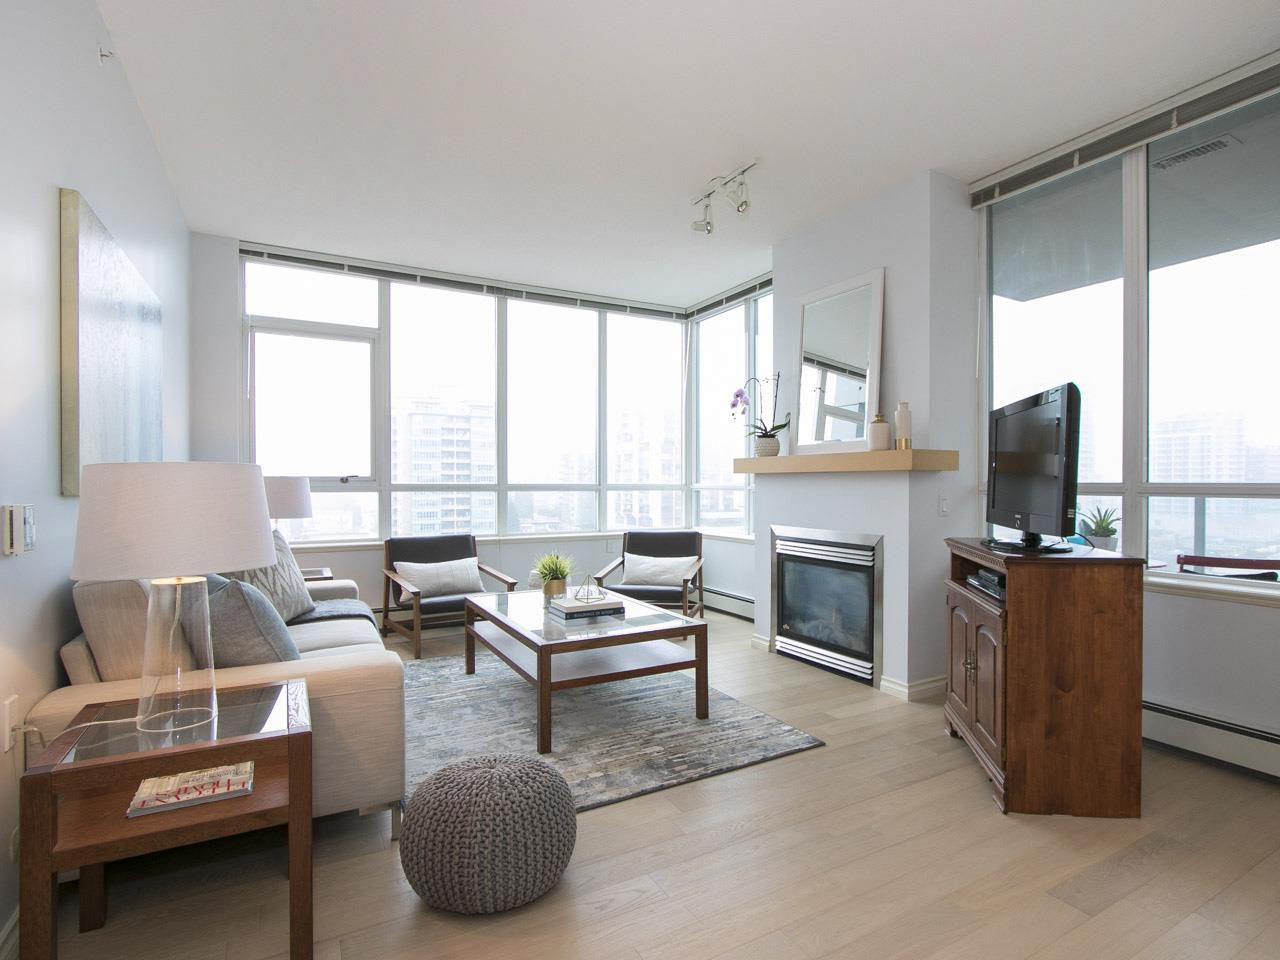 """Main Photo: 904 120 W 16TH Street in North Vancouver: Central Lonsdale Condo for sale in """"The Symphony"""" : MLS®# R2122716"""